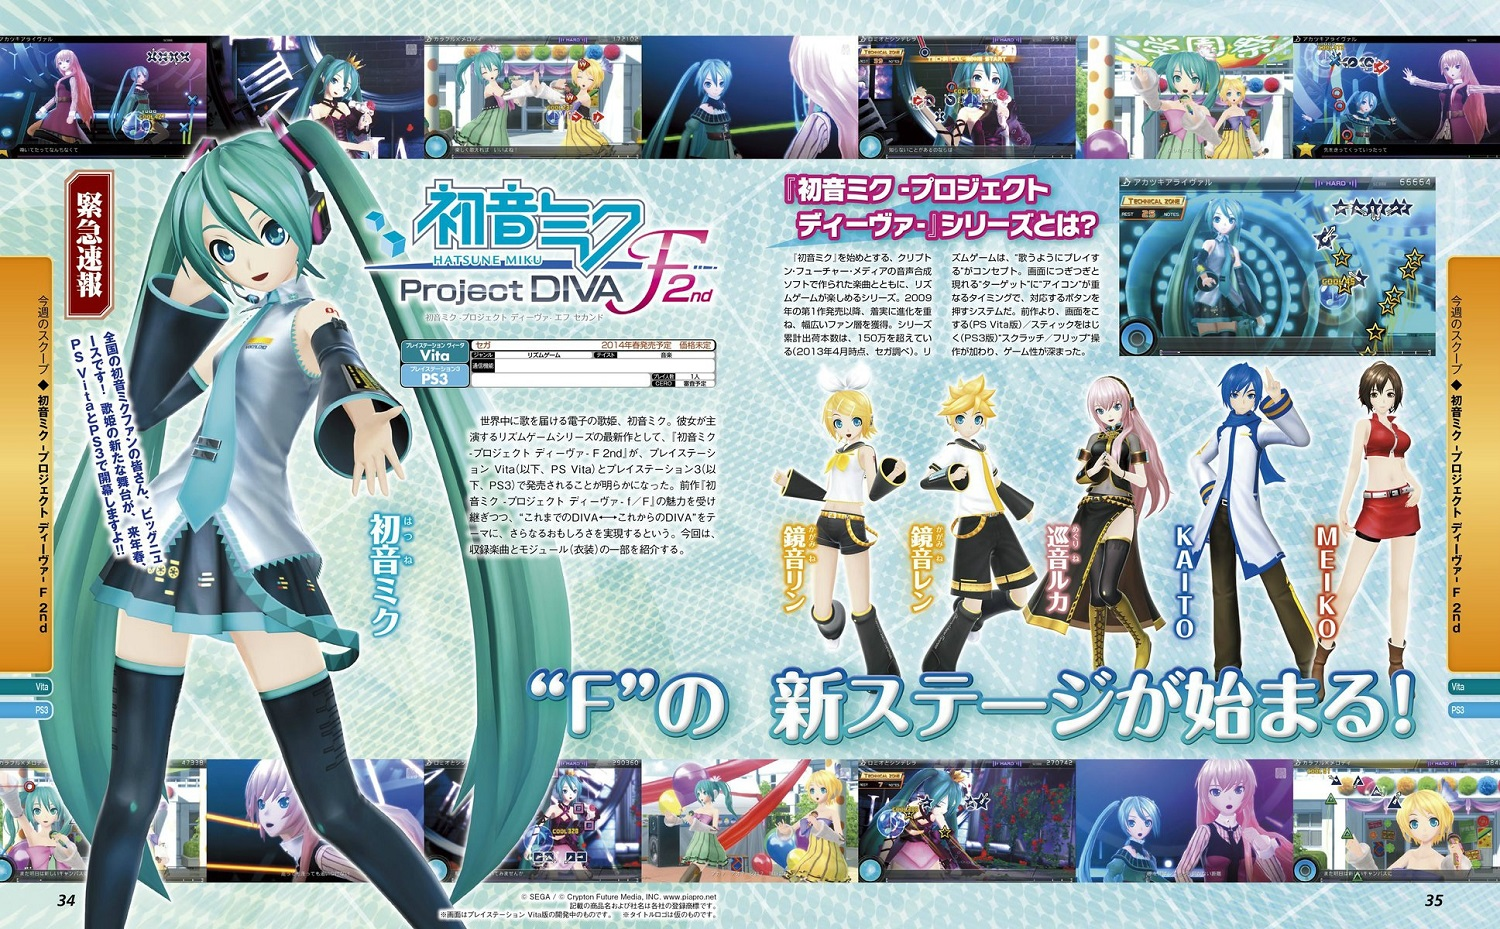 Hatsune-Miku-Project-Diva-F-2nd-Gets-Japanese-Release-Date-2